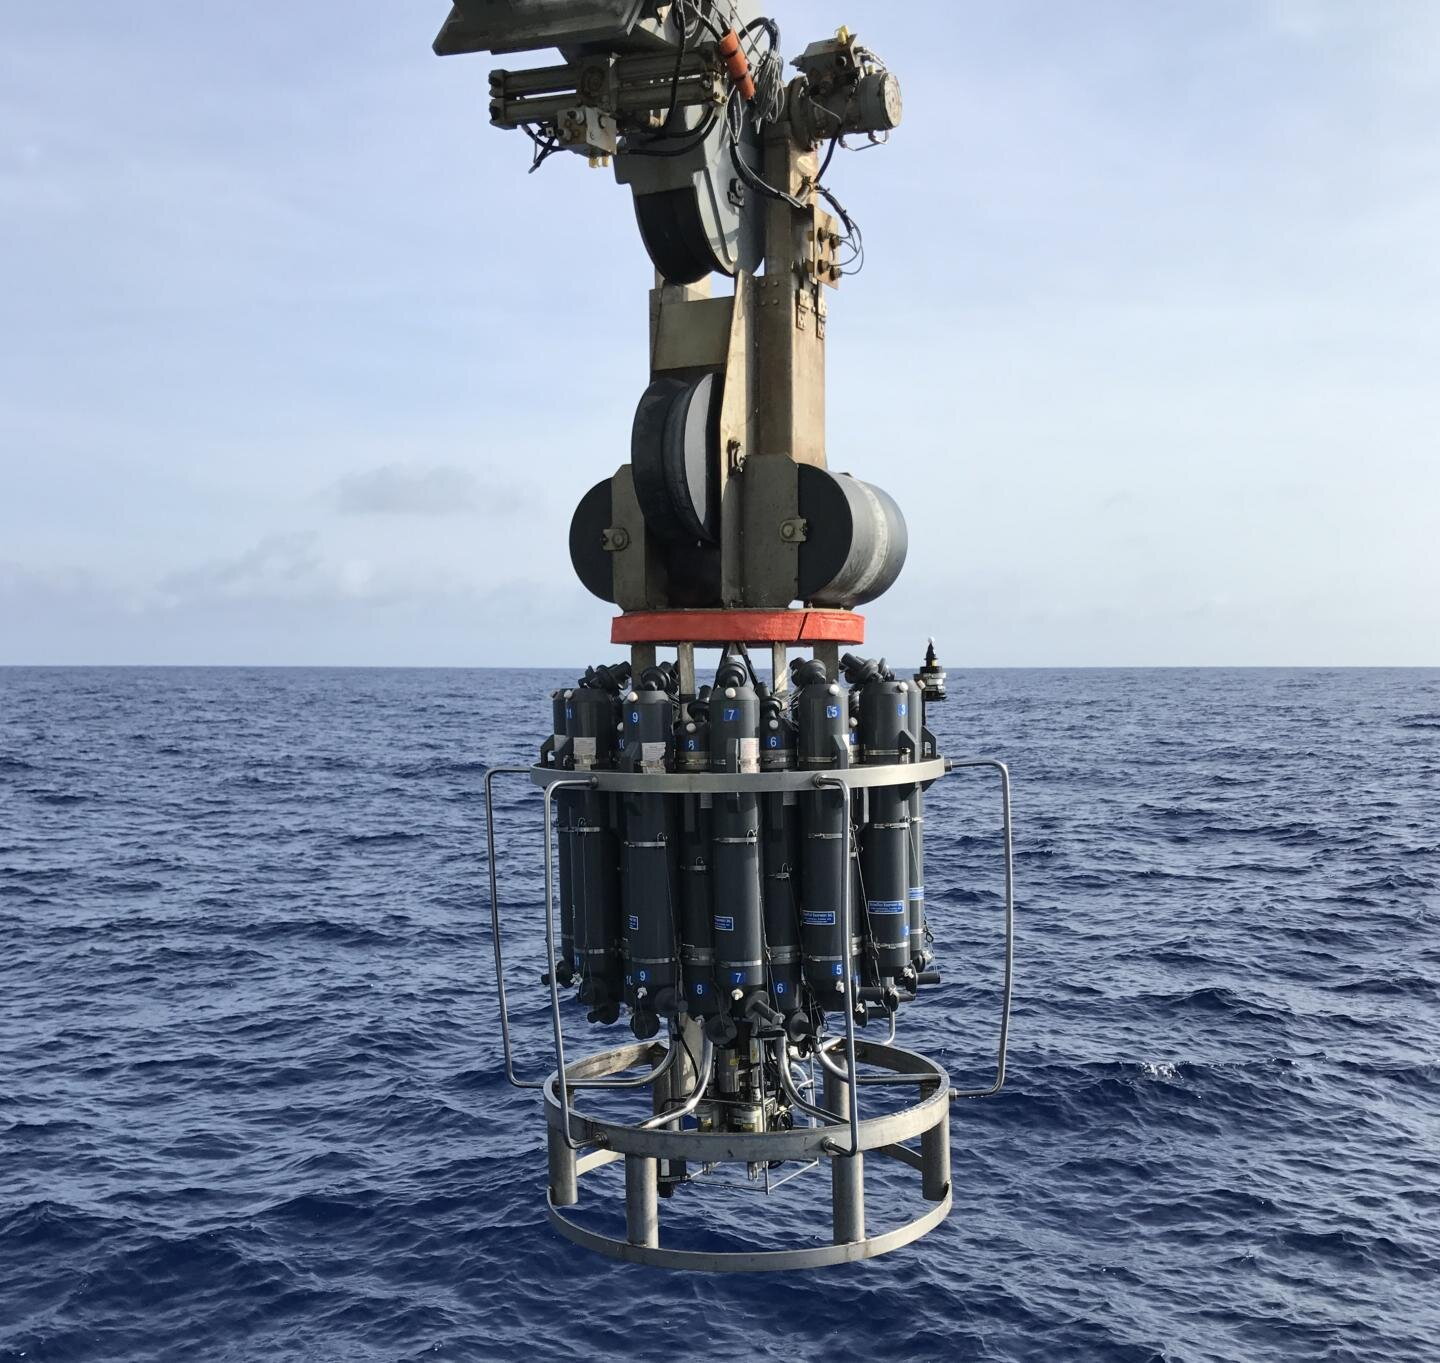 Researchers discover an immense hydrocarbon cycle in the world's ocean